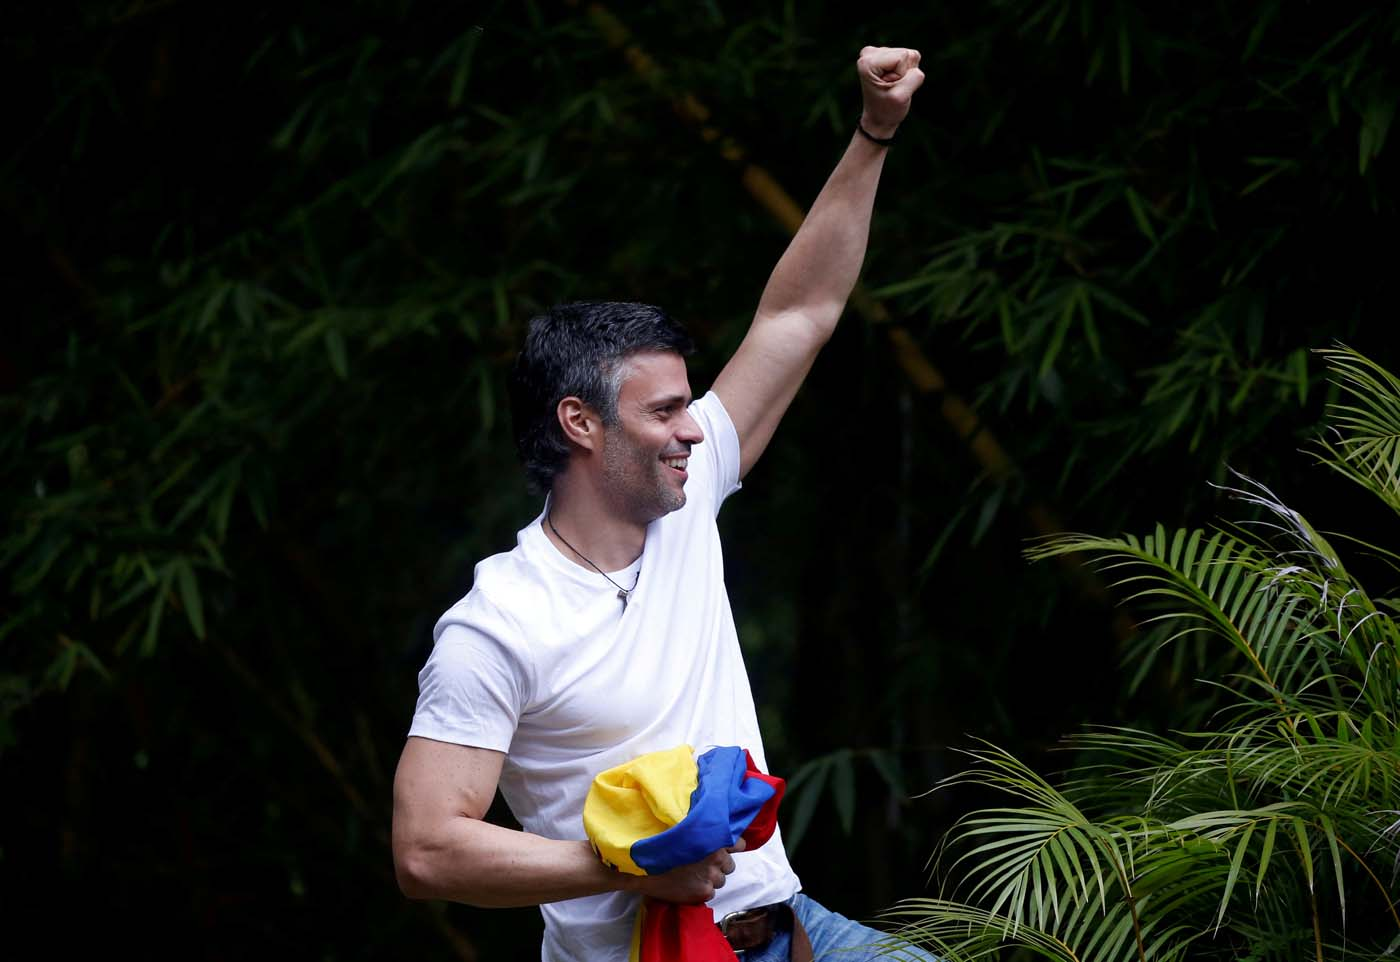 FILE PHOTO: Venezuela's opposition leader Leopoldo Lopez, who has been granted house arrest after more than three years in jail, salutes supporters, in Caracas, Venezuela July 8, 2017. REUTERS/Andres Martinez Casares/File Photo